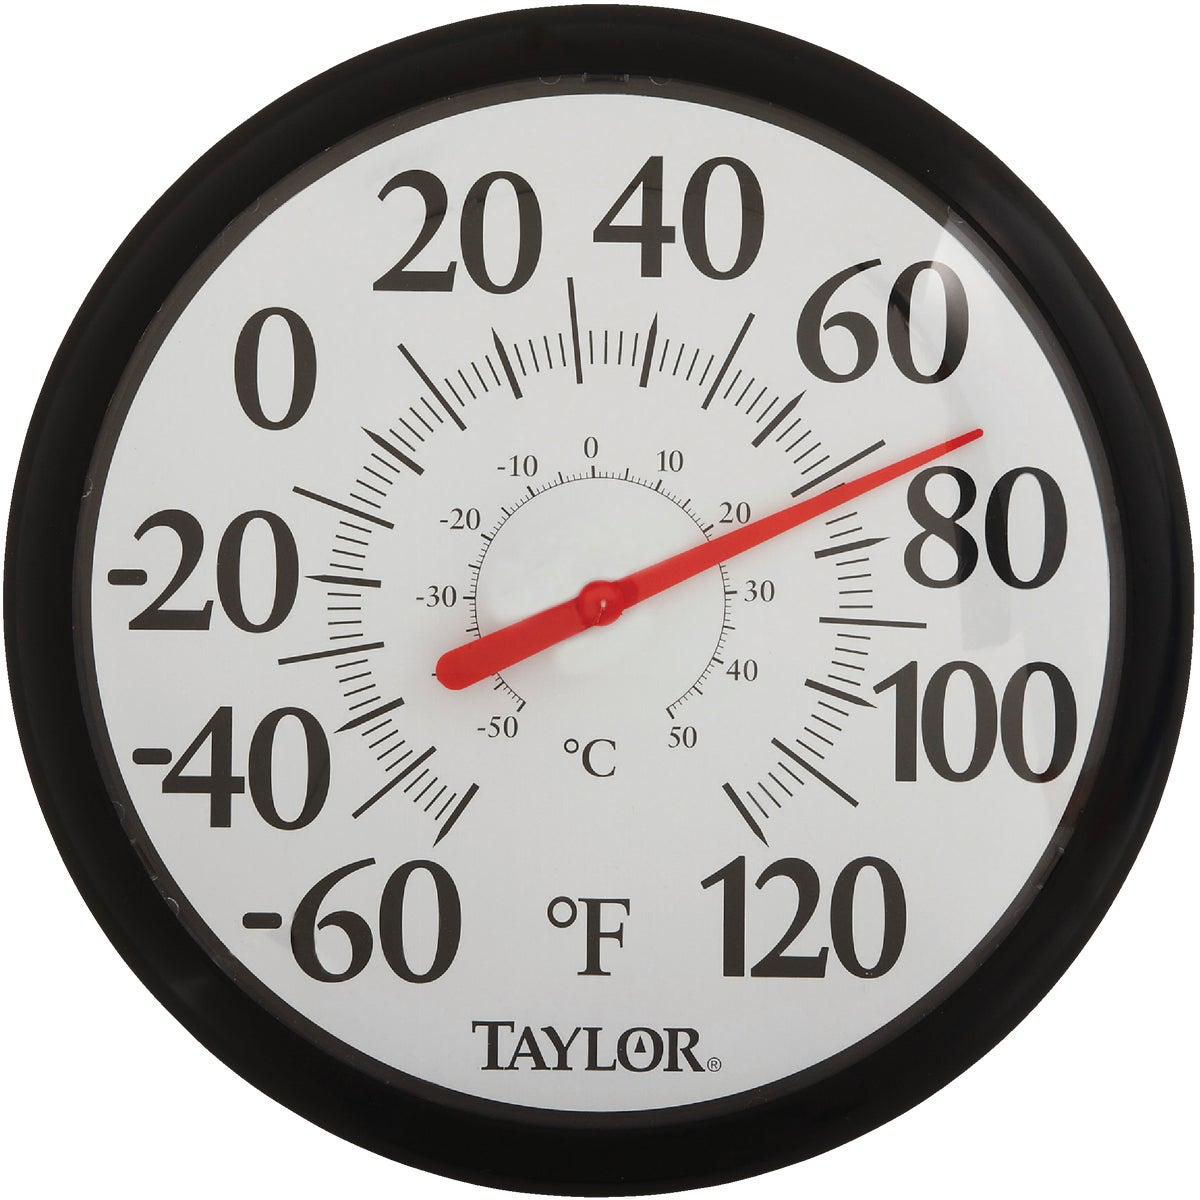 EZ READ DIAL THERMOMETER - 6700 by Taylor Precision